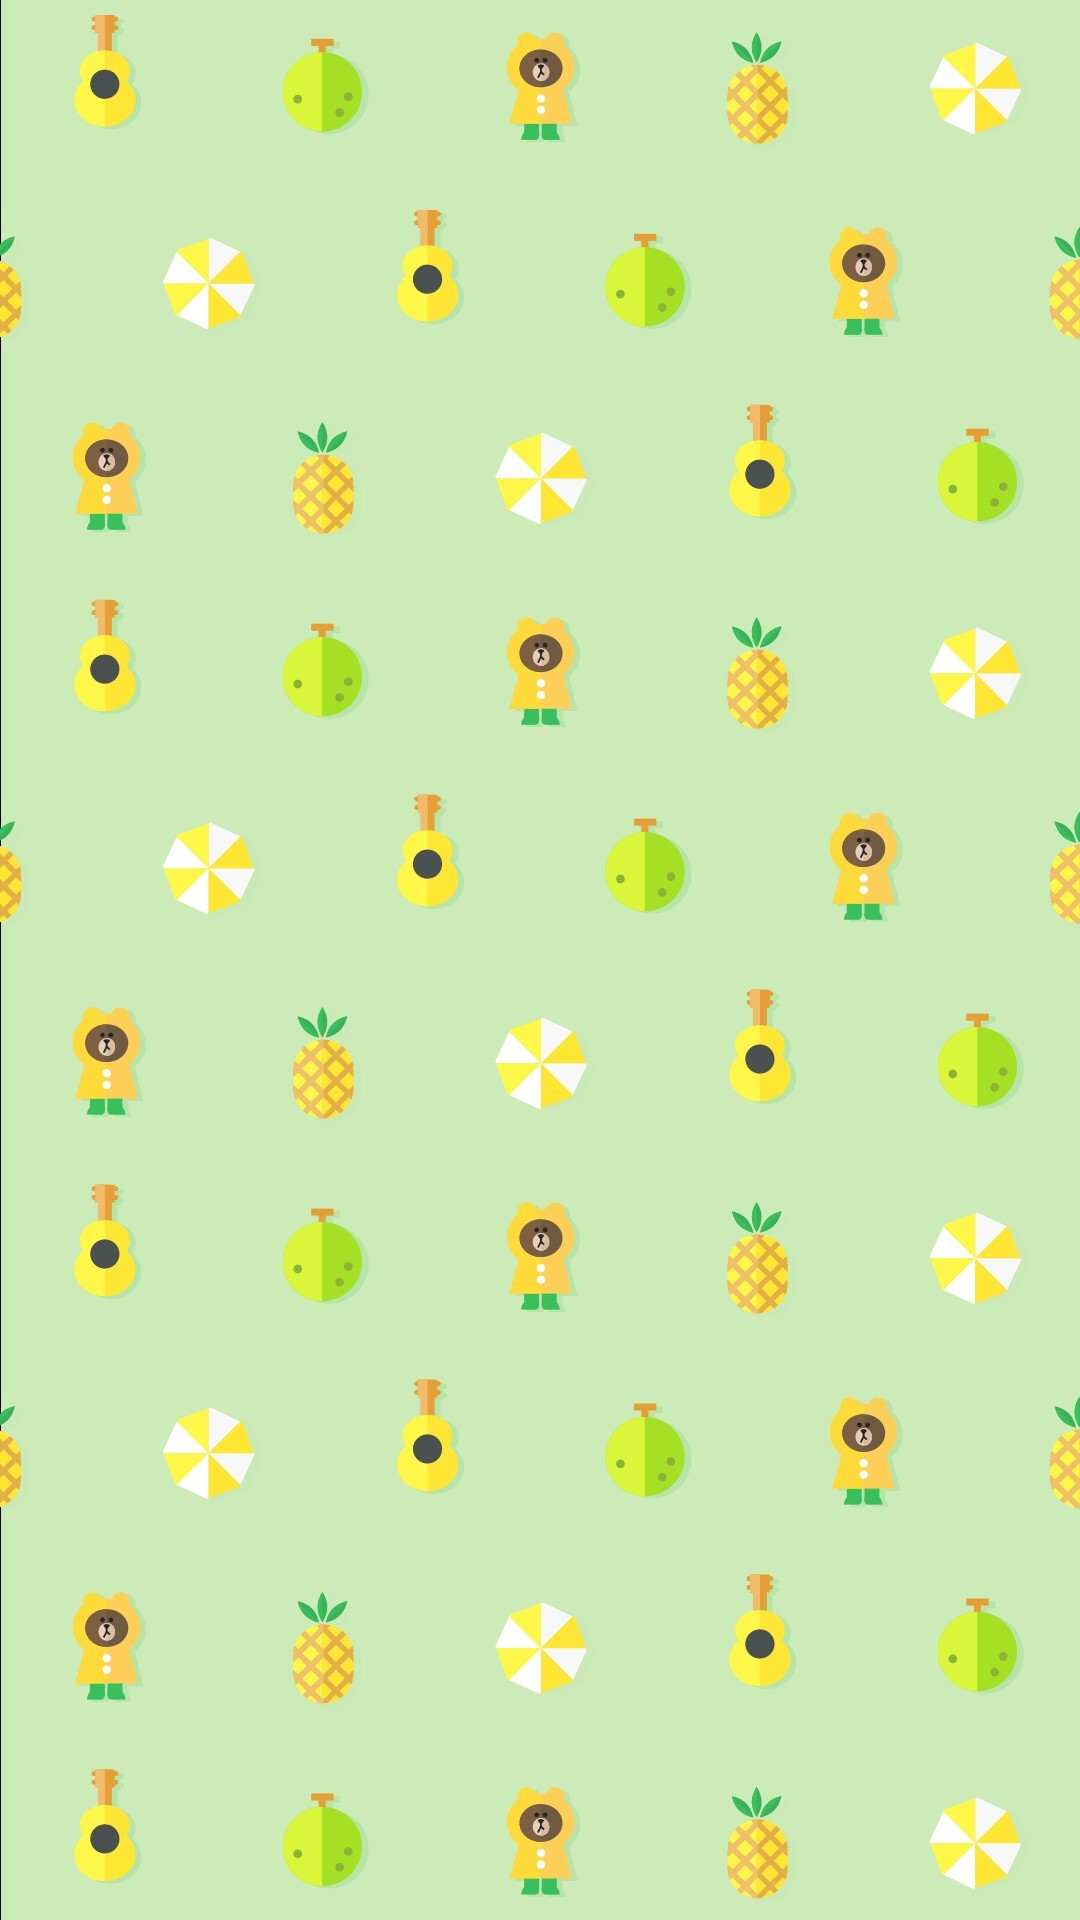 Cute wallpaper designs 47 images for Cute designs for paper